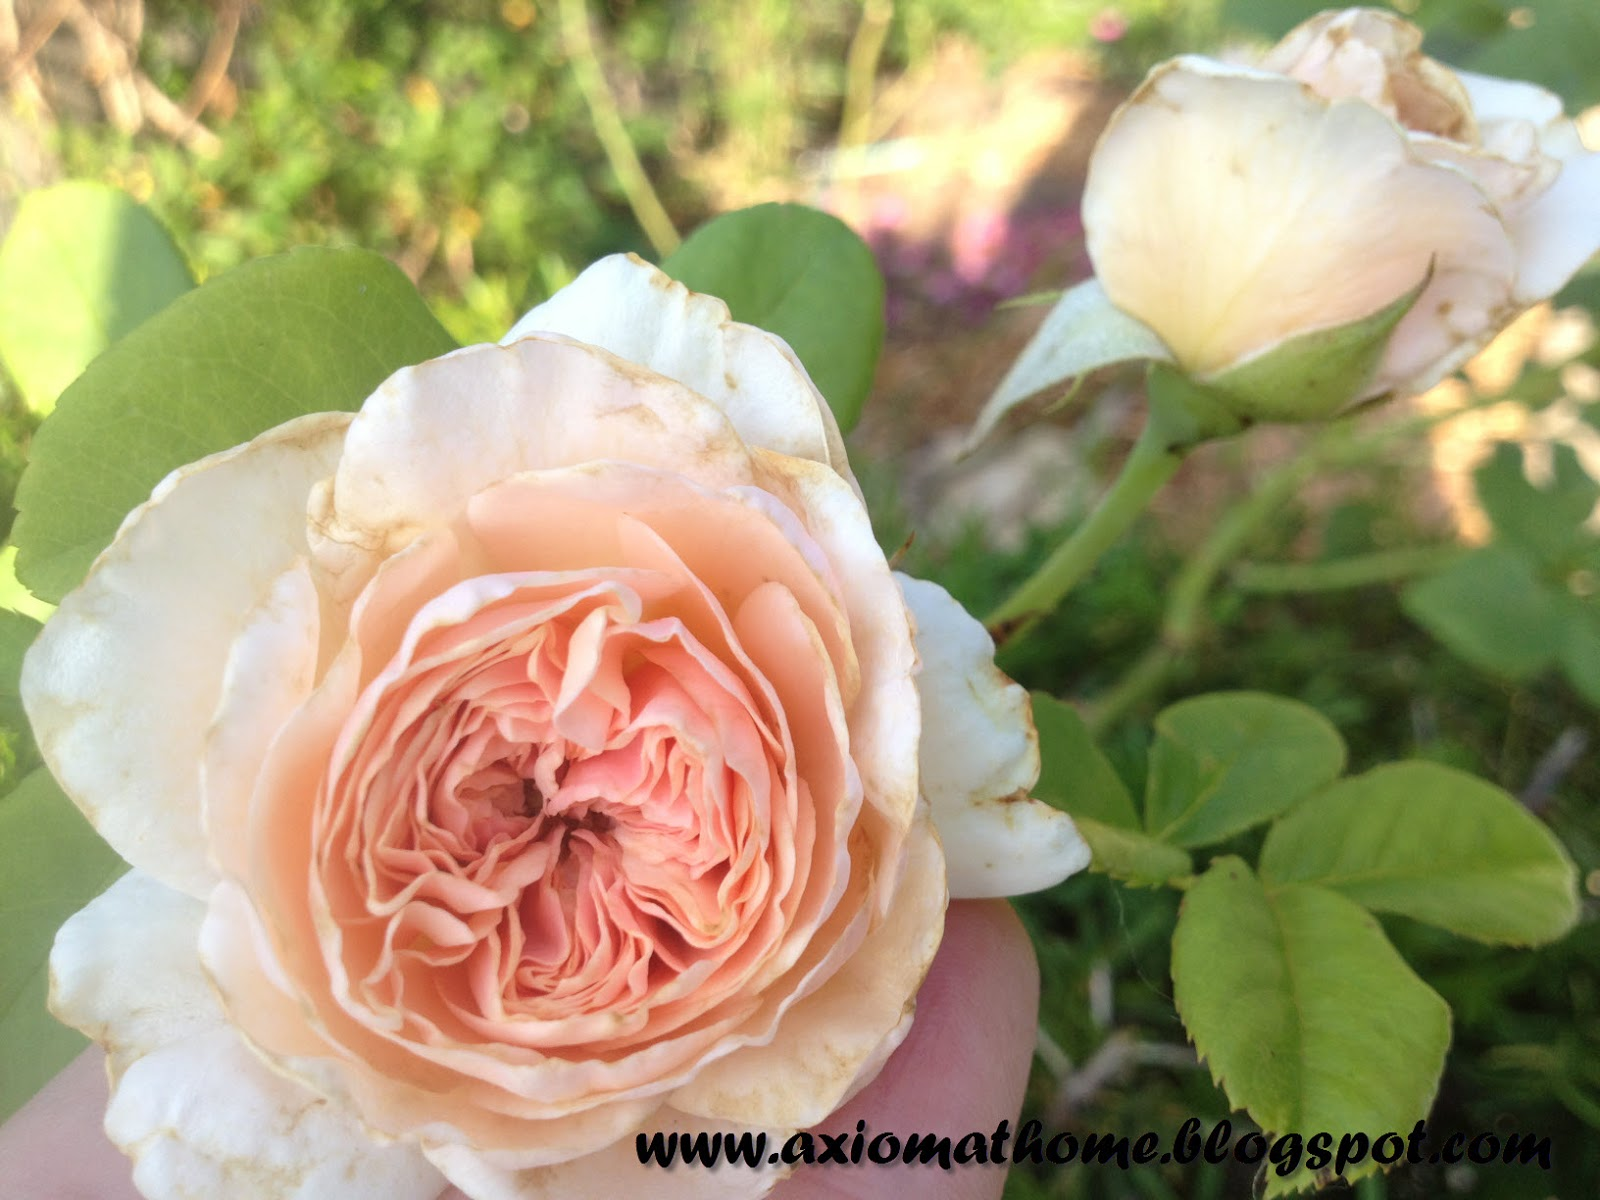 Axiom At Home: Natural Treatments for Black Spot (on Roses)